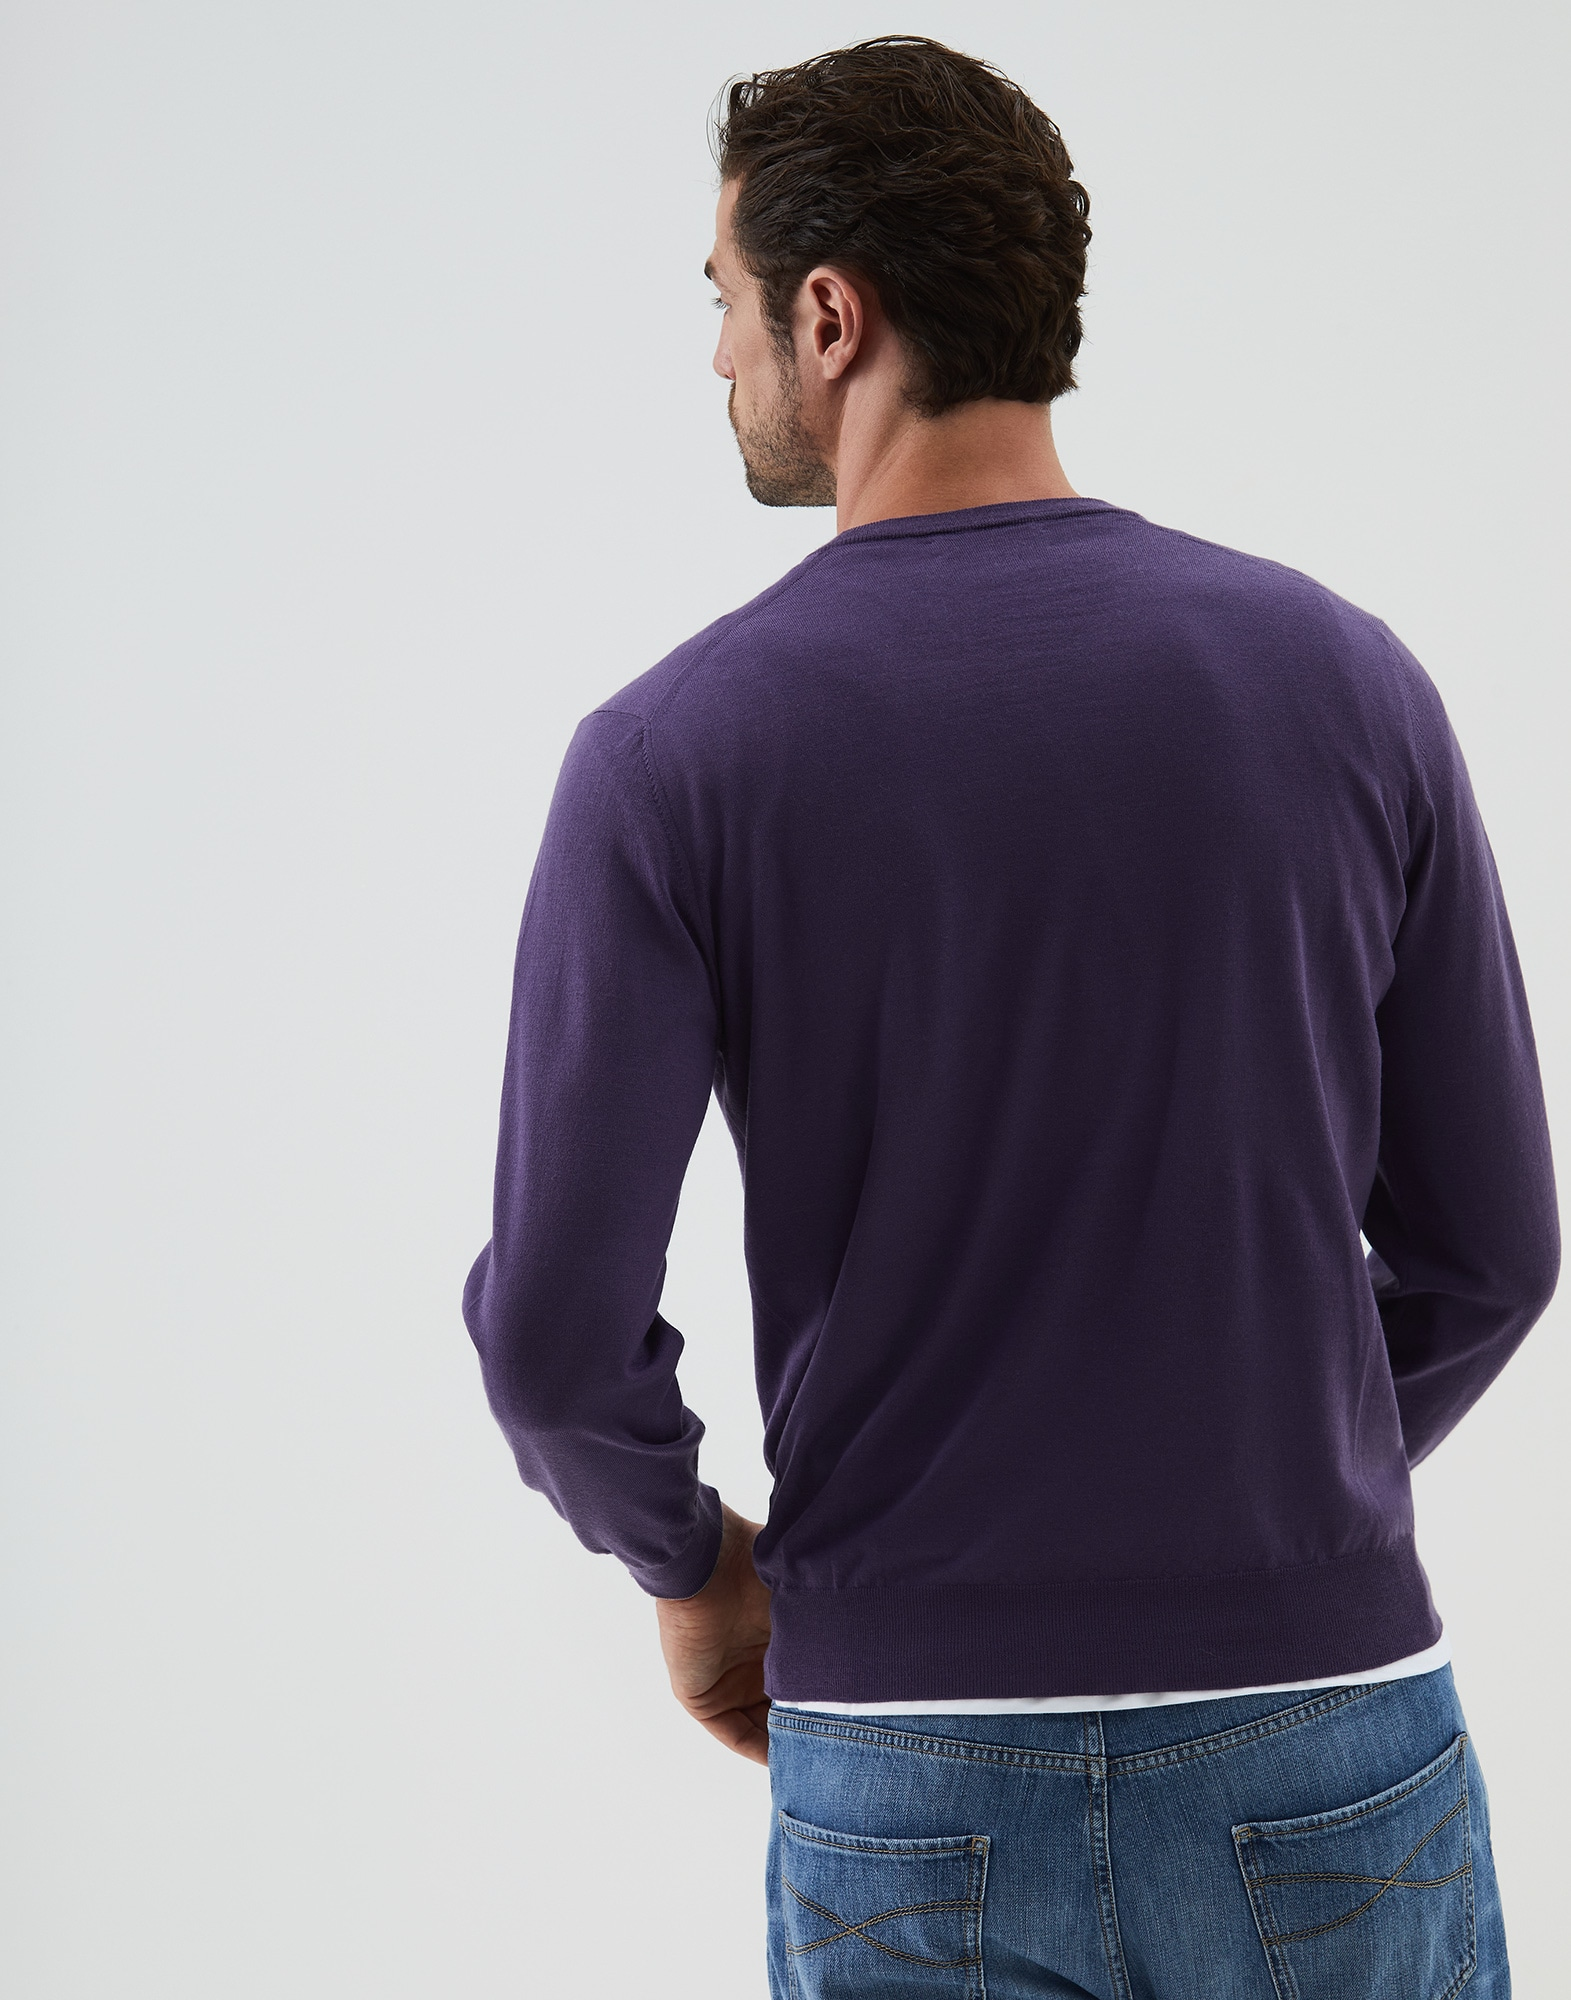 V-neck Sweater Aubergine Man 1 - Brunello Cucinelli